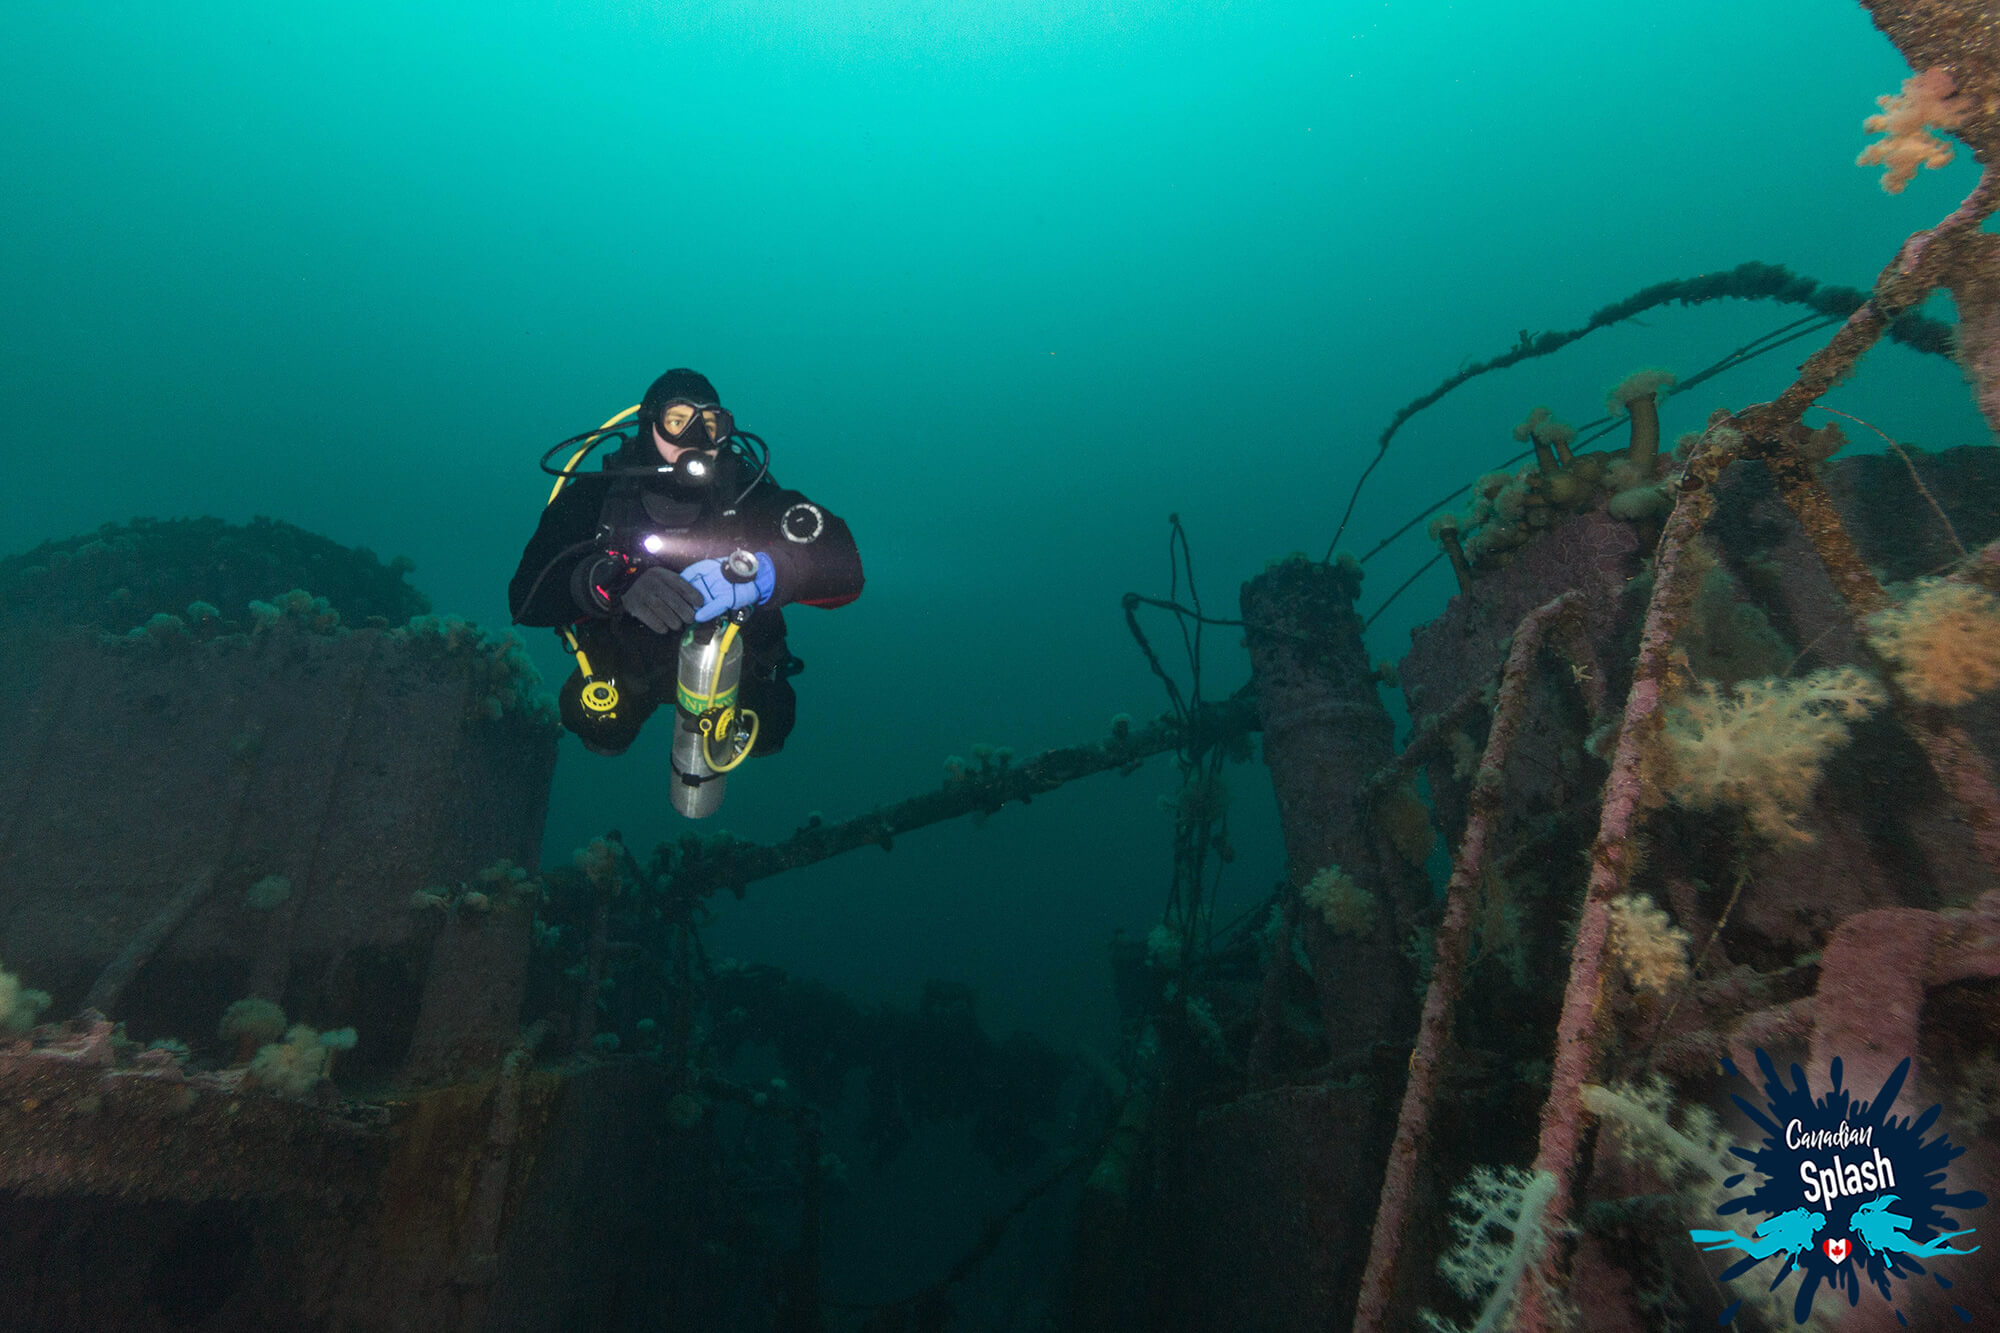 Joey Exploring The Rose Castle In Newfoundland, Scuba Diving Canada